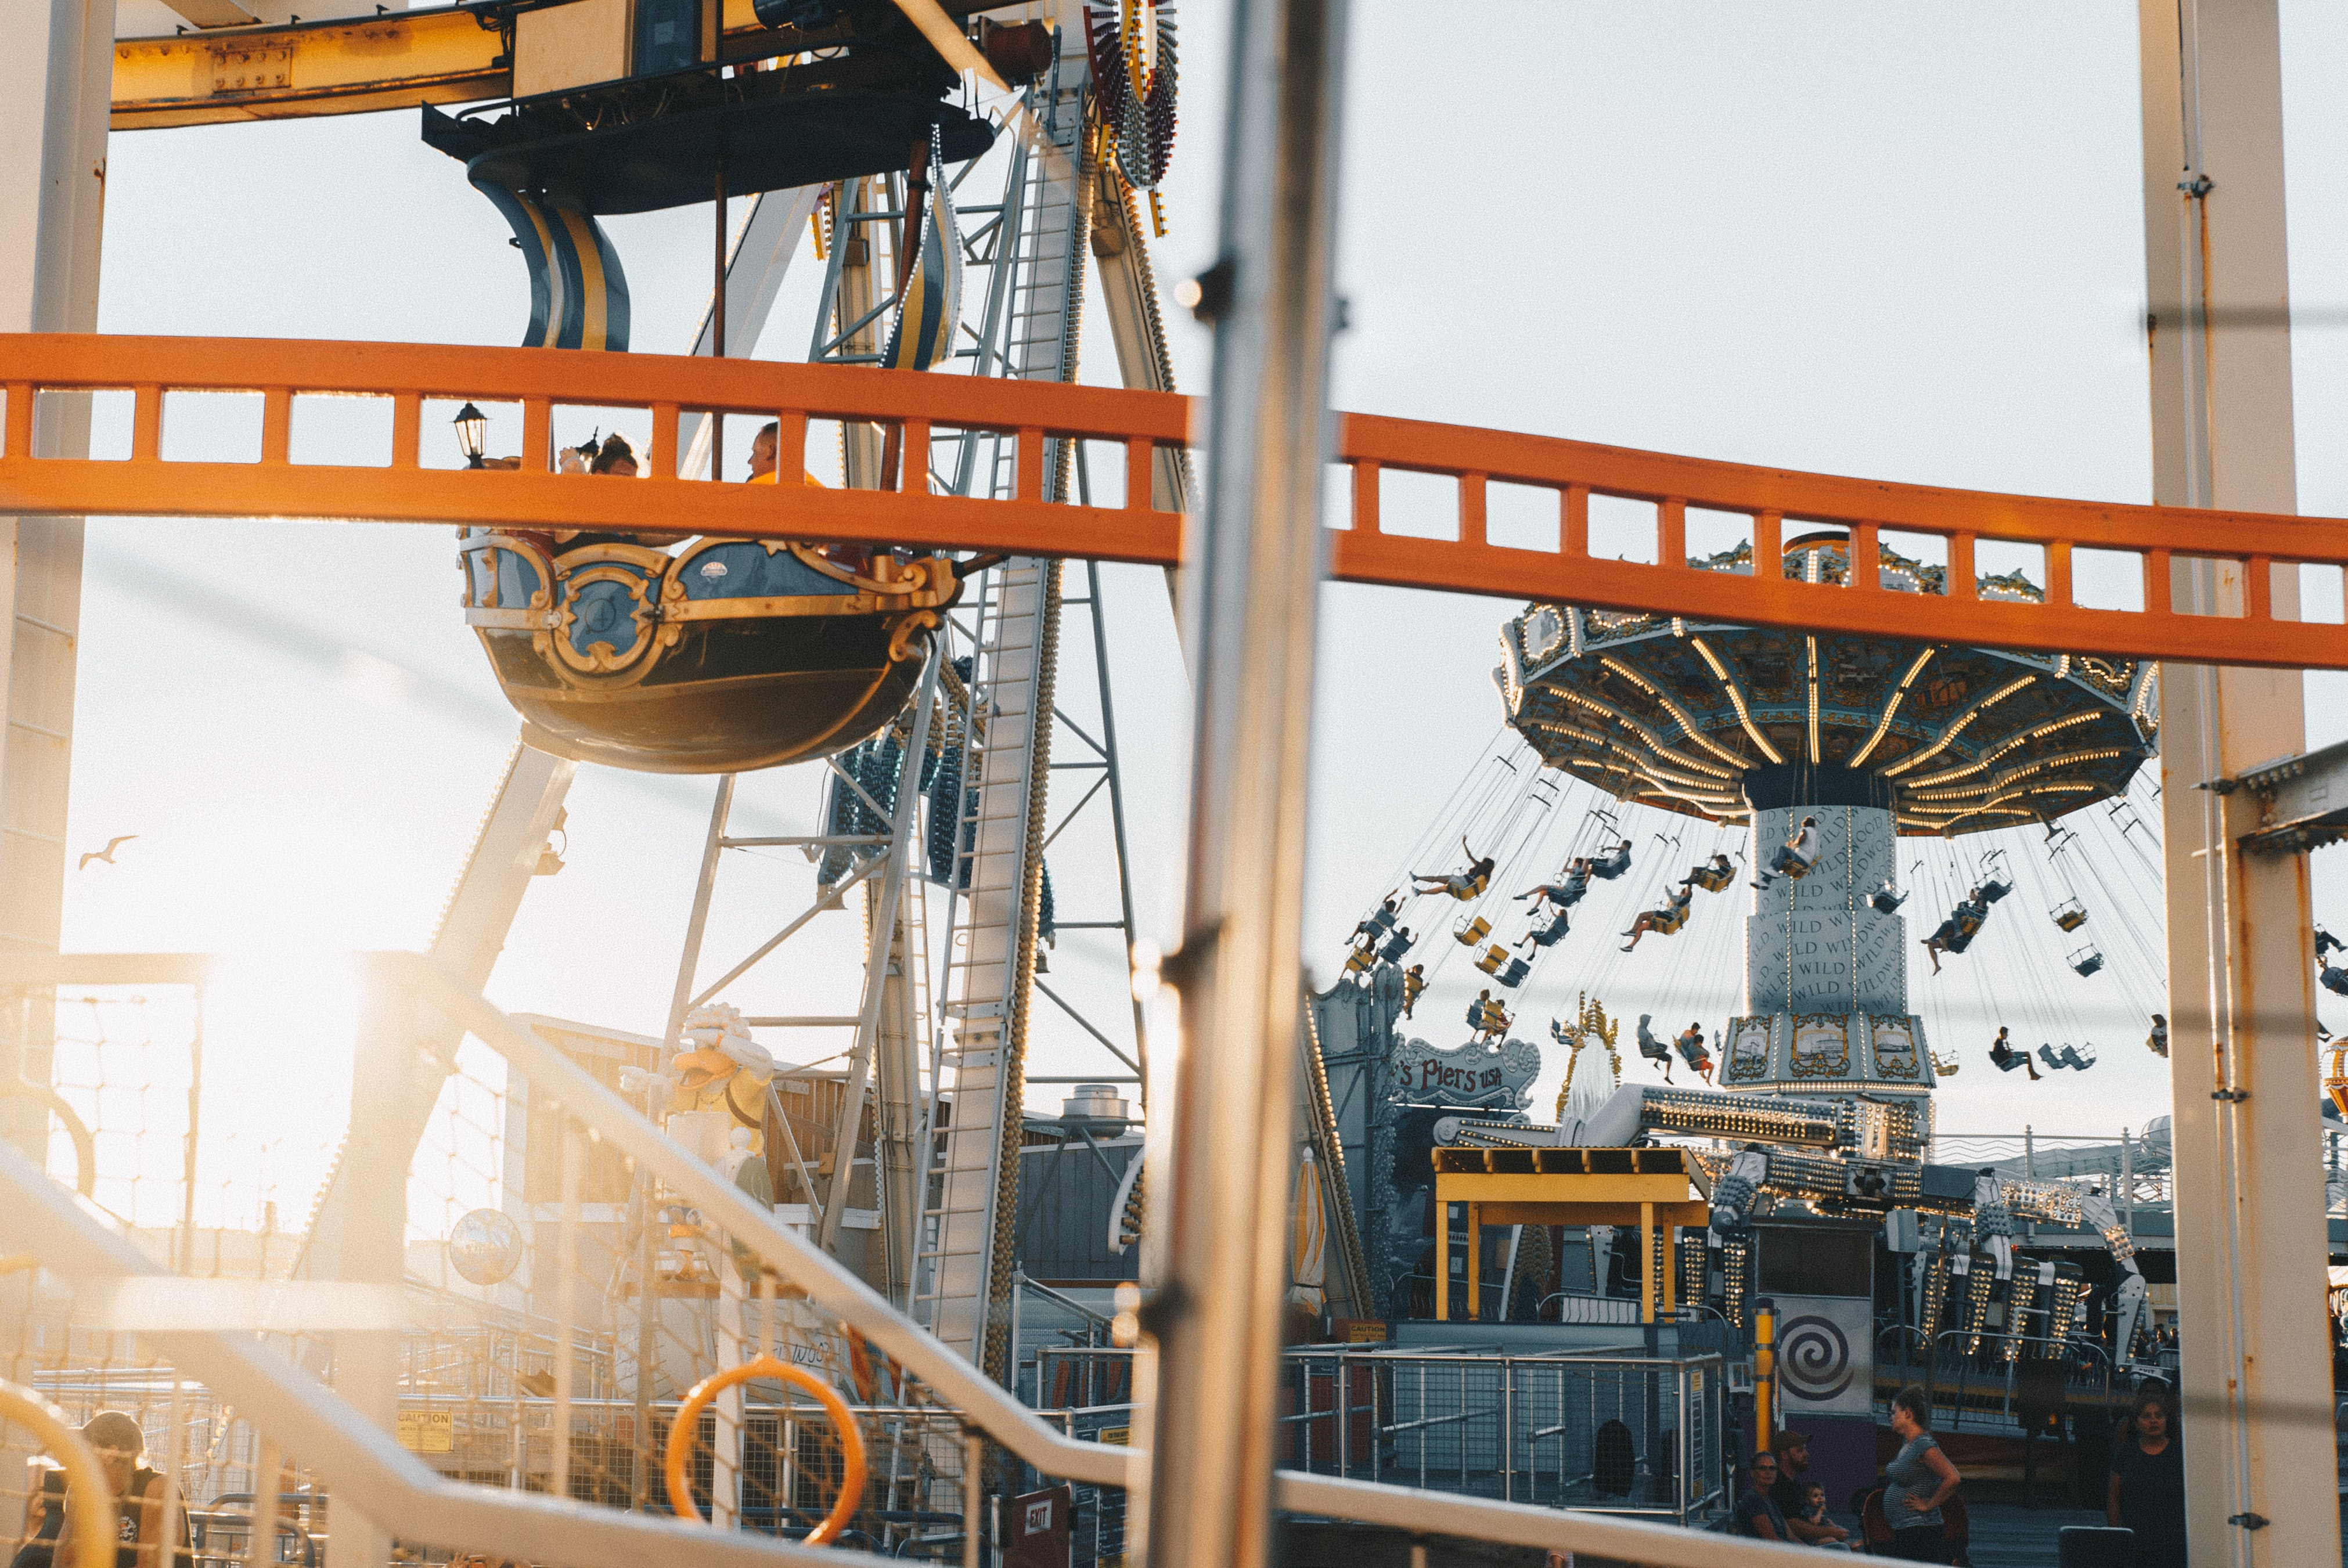 People at Morey's Piers & Beachfront Water Parks enjoying the swing ride and Ferris Wheel at sunset